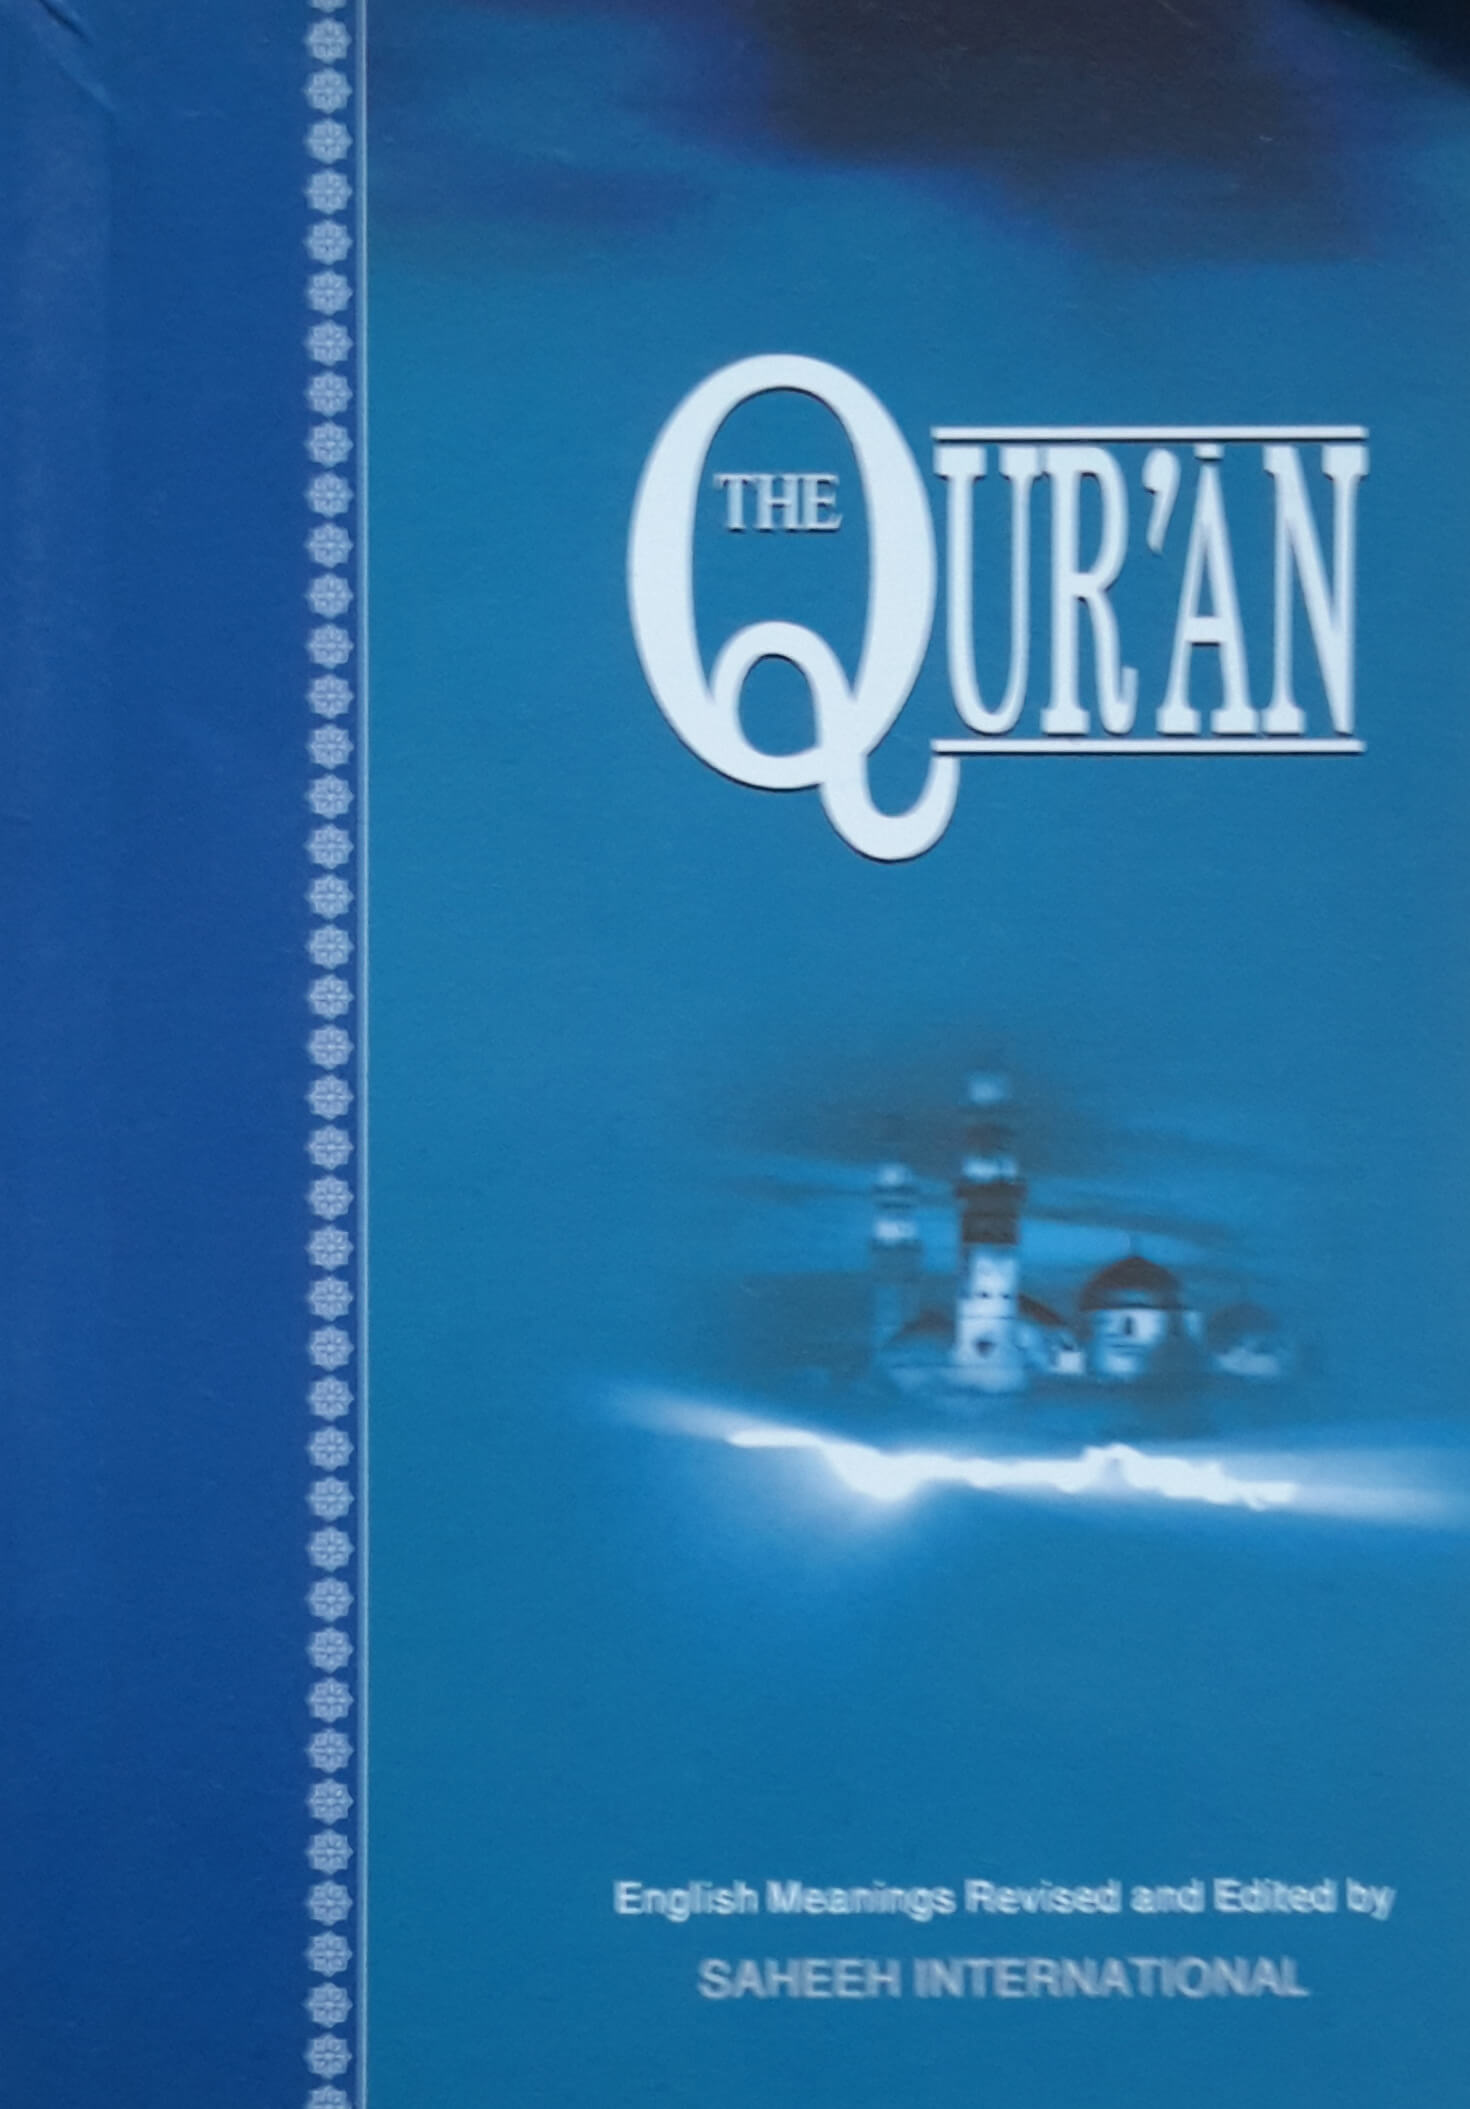 quran and modern science essay Short essay on islam and modern science how to start creative writing club short essay on islam and modern science how to start creative writing club april 9.